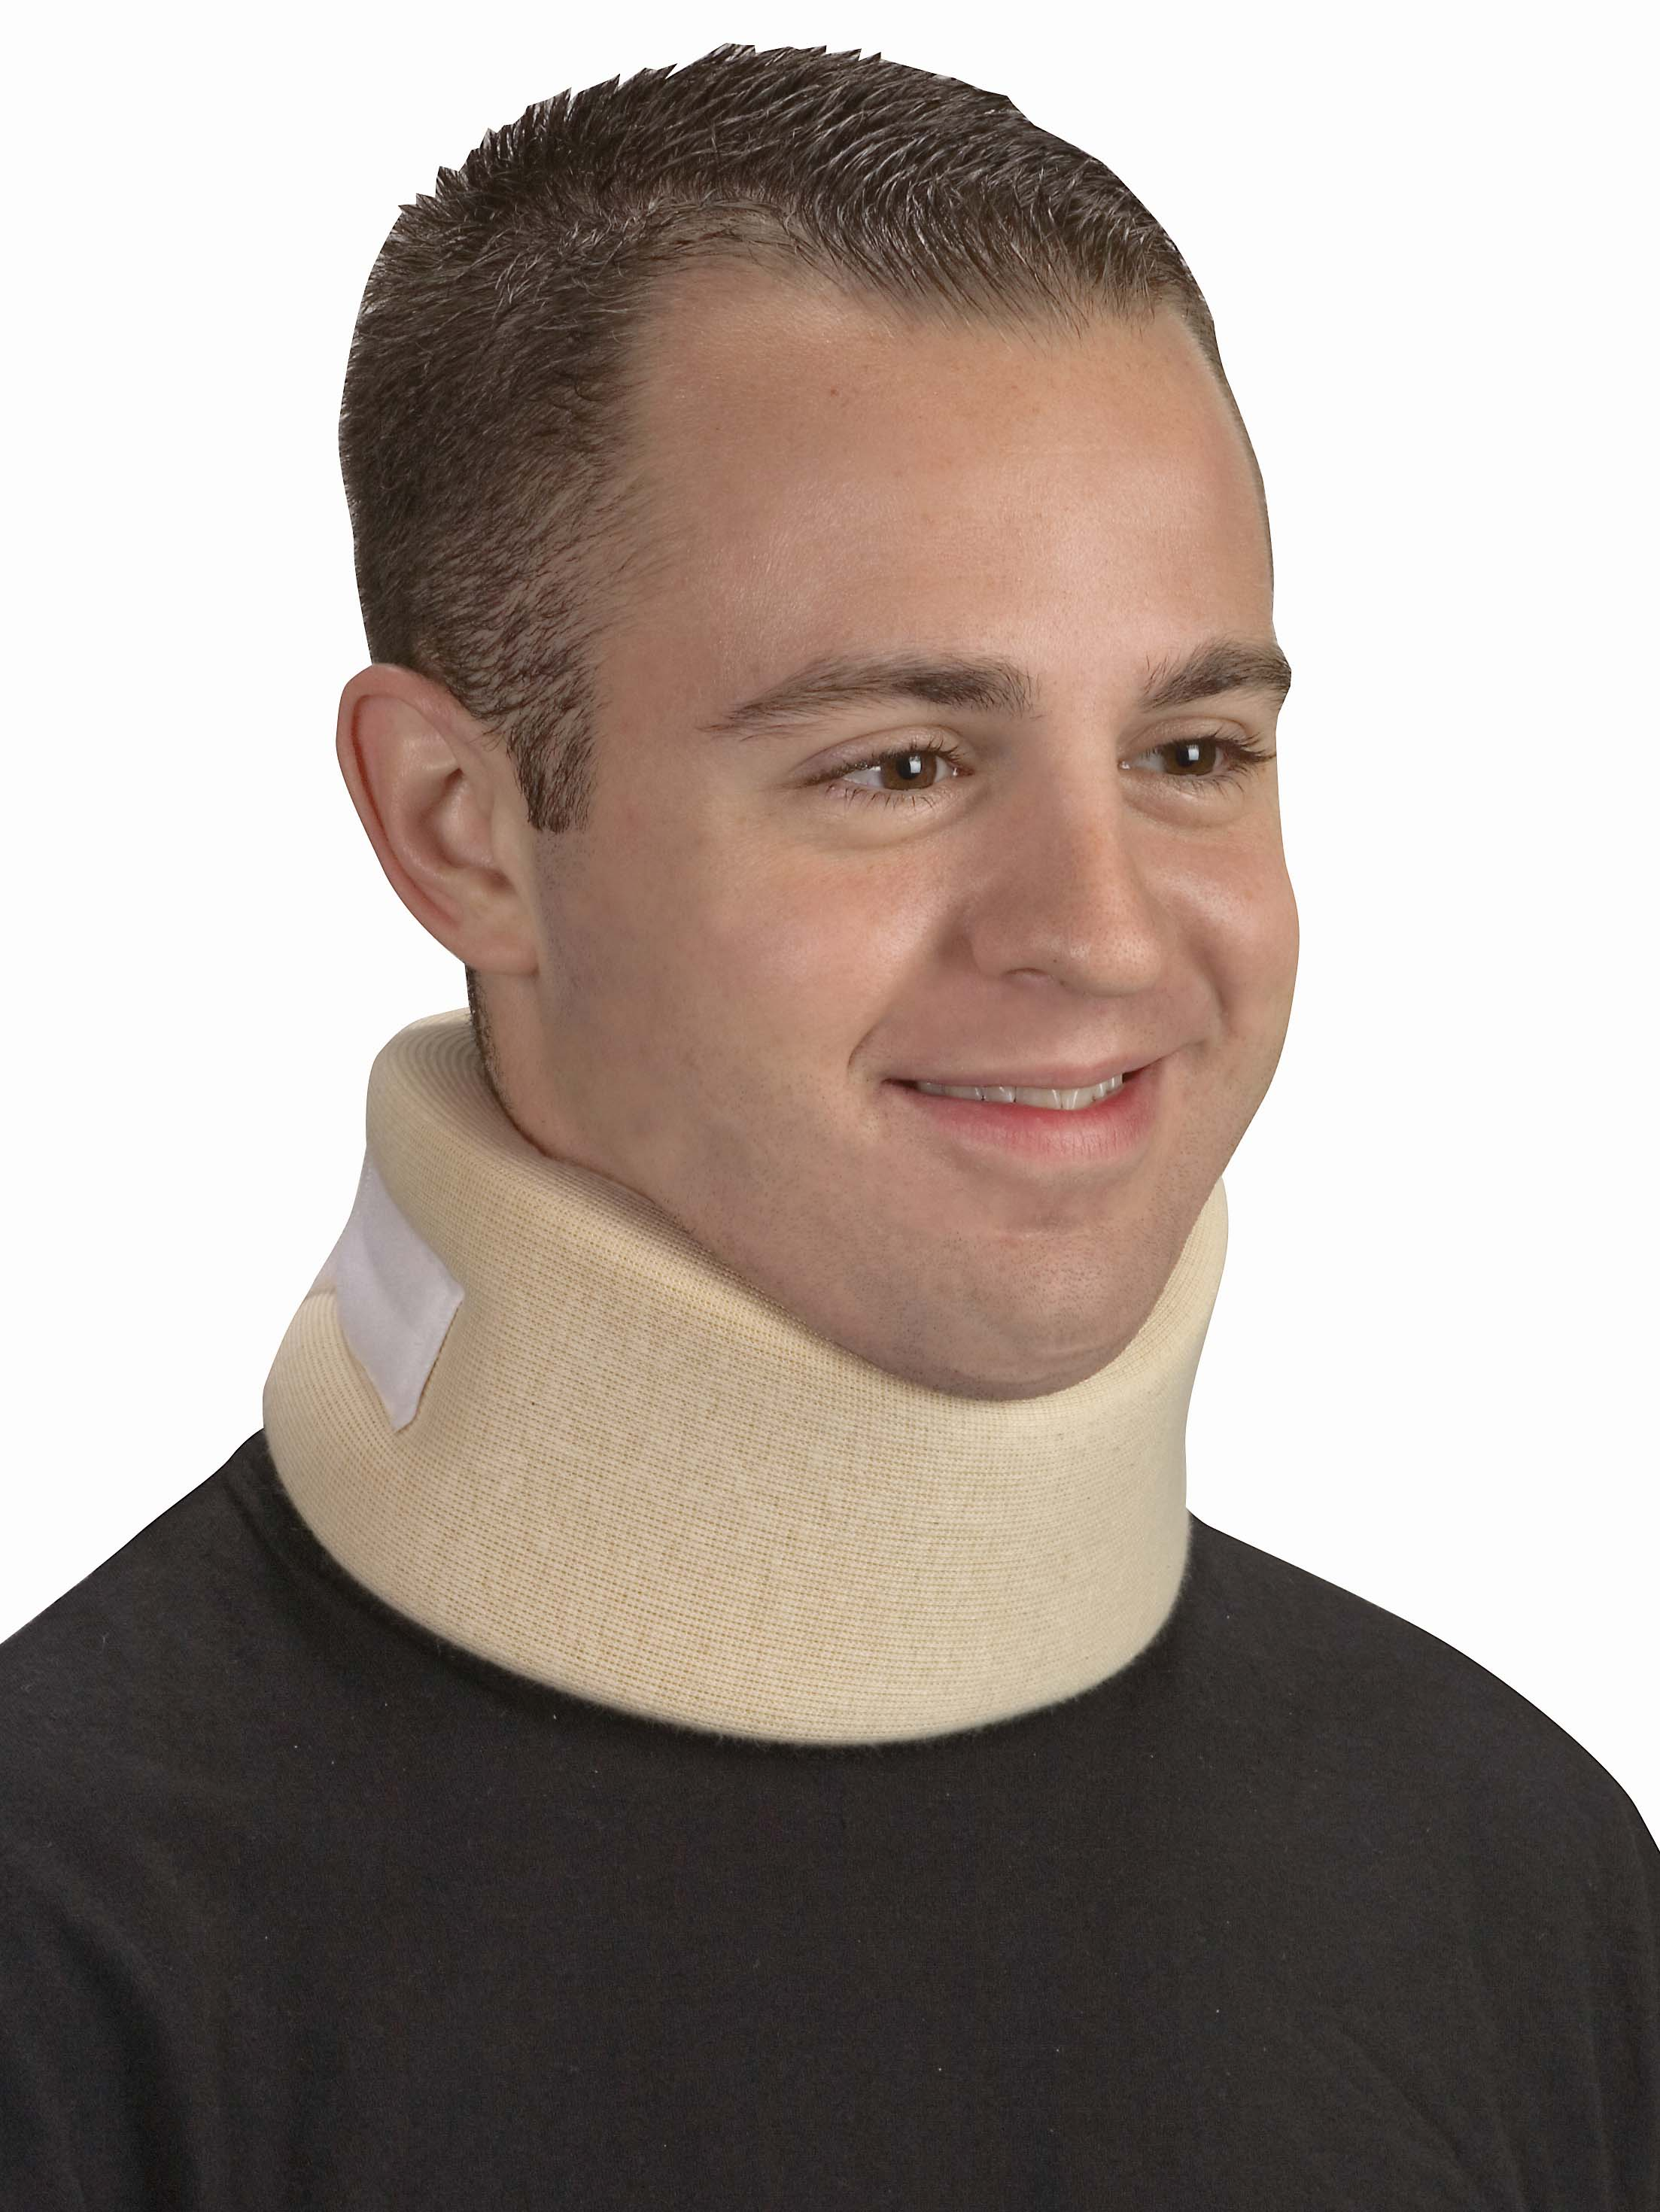 universal-firm-foam-cervical-collar-3-631-6057-0042-lr-2.jpg